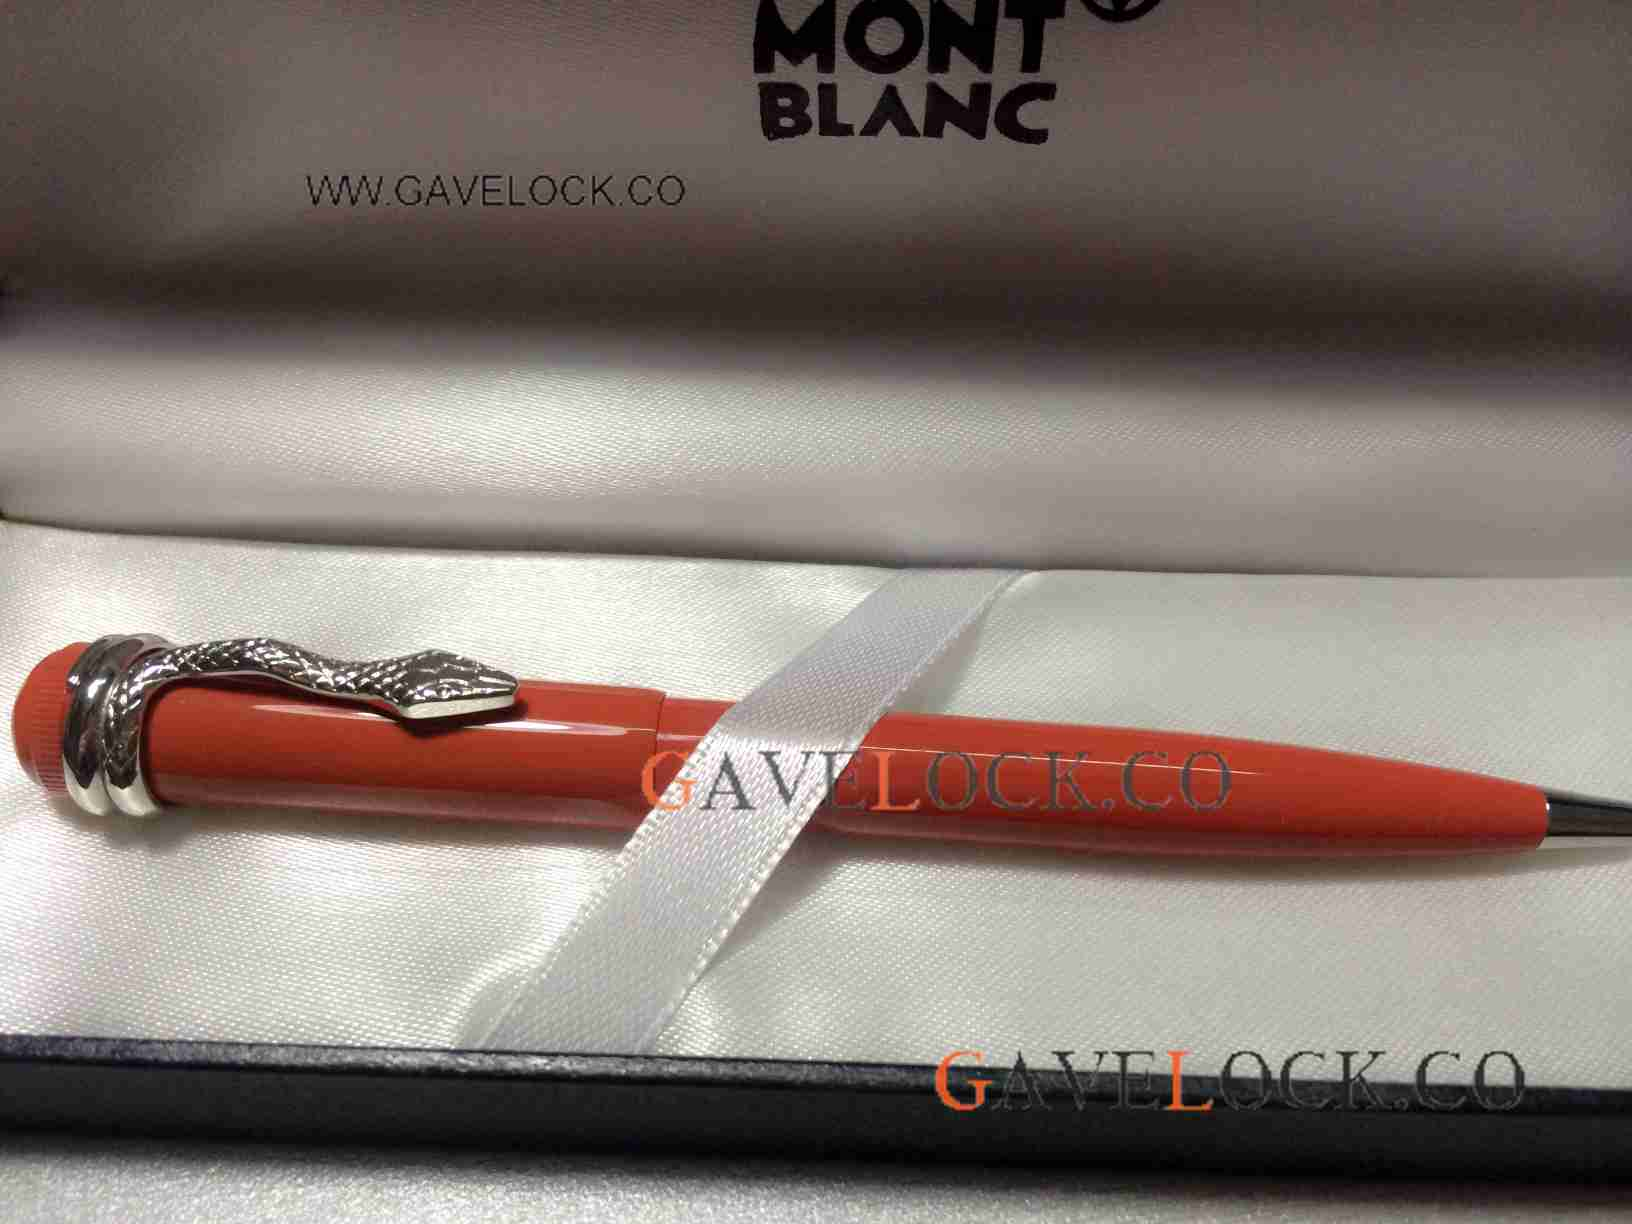 AAA Replica Montblanc Pen Heritage Collection Rouge Et Noir Red Ballpoint Pen